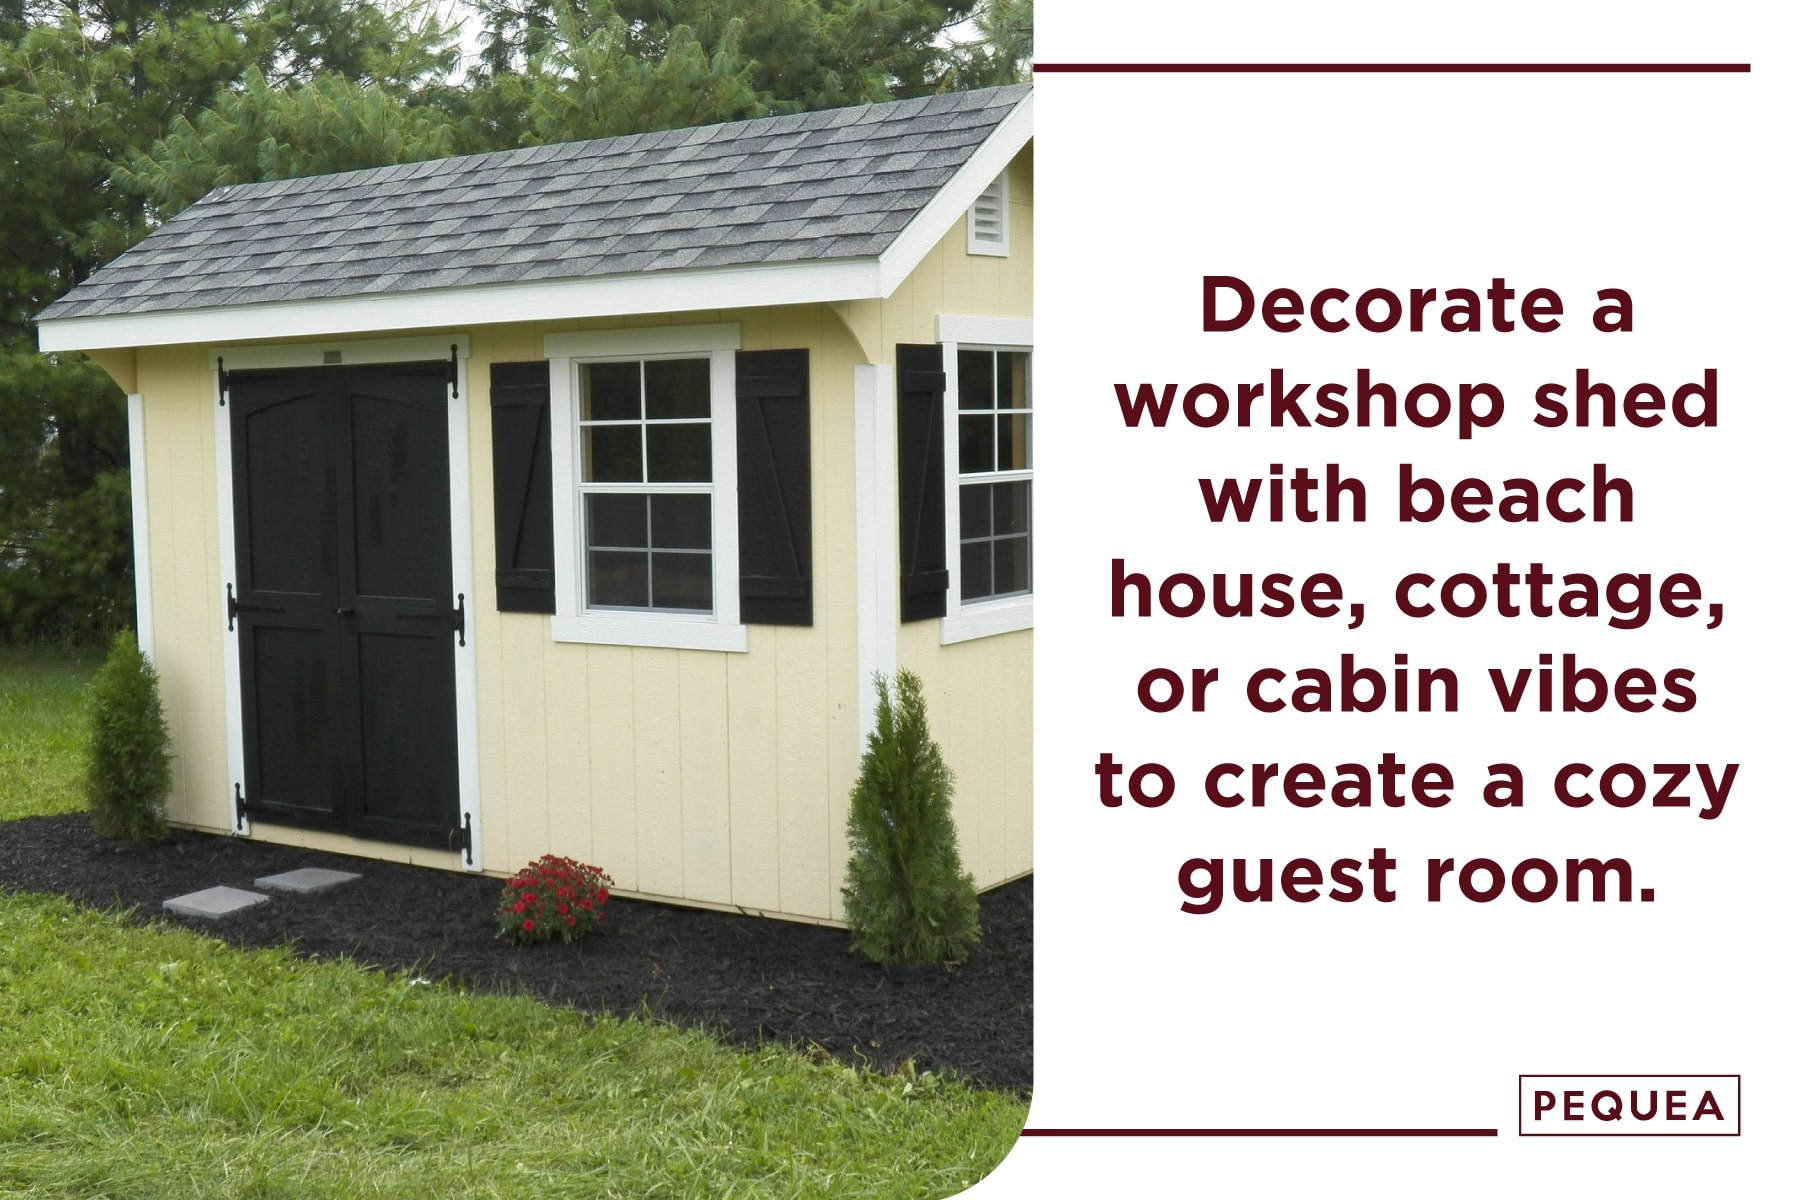 decorate a workshop shed in your style to create a guest room